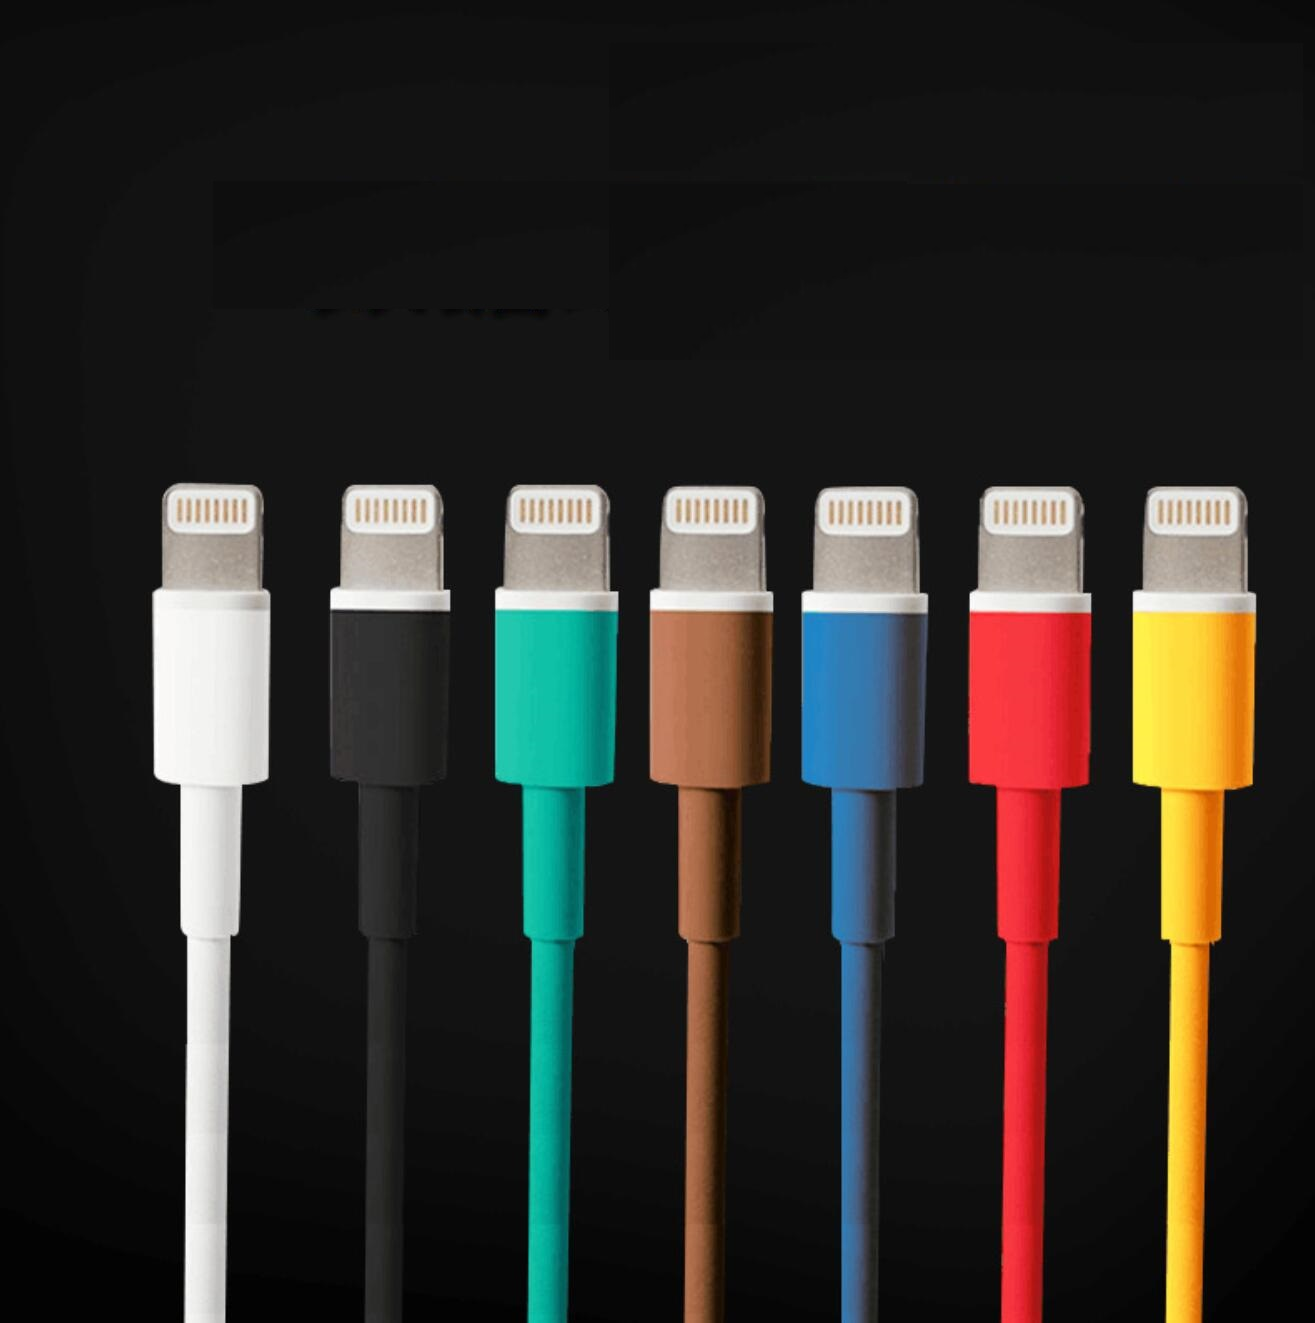 Tools : MINI Heat Gun and Polyolefin Heat Shrink Tube Assorted Insulation Shrinkable Tube 2 1 Wire Cable Sleeve Kit can Drop shopping